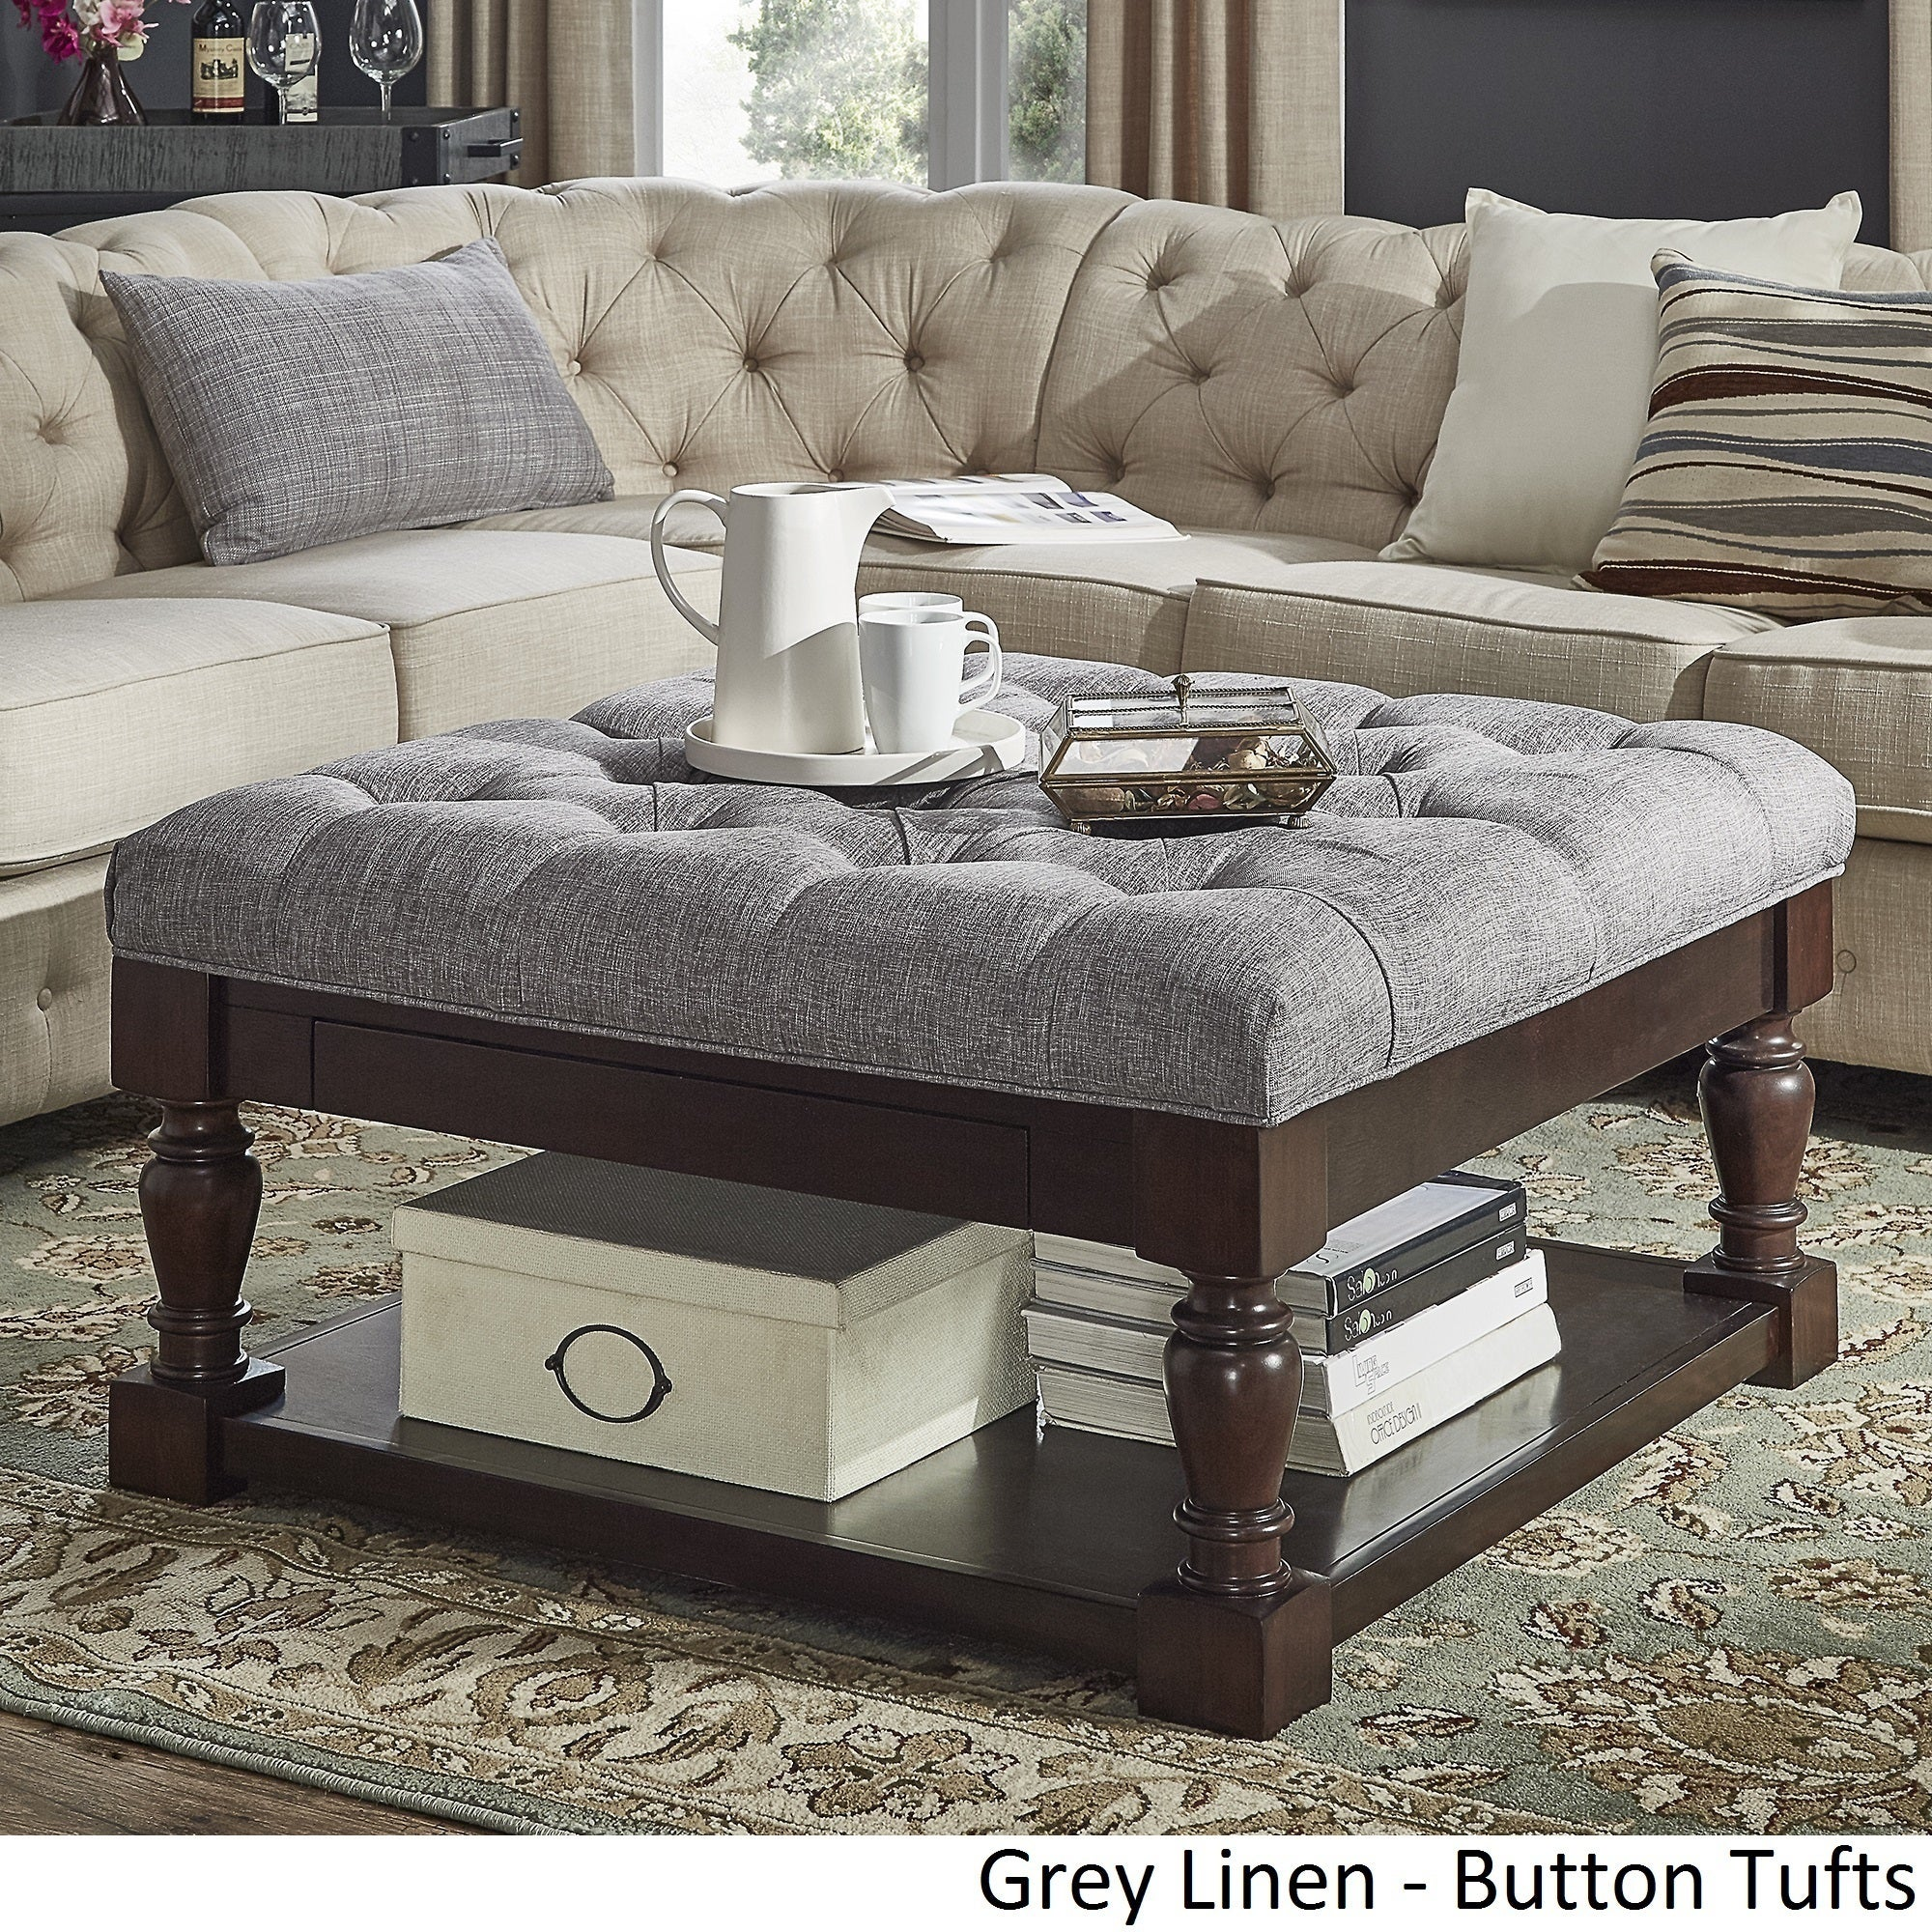 Lennon Baer Espresso Storage Ottoman Coffee Table By Inspire Q Clic Free Shipping Today 20177485